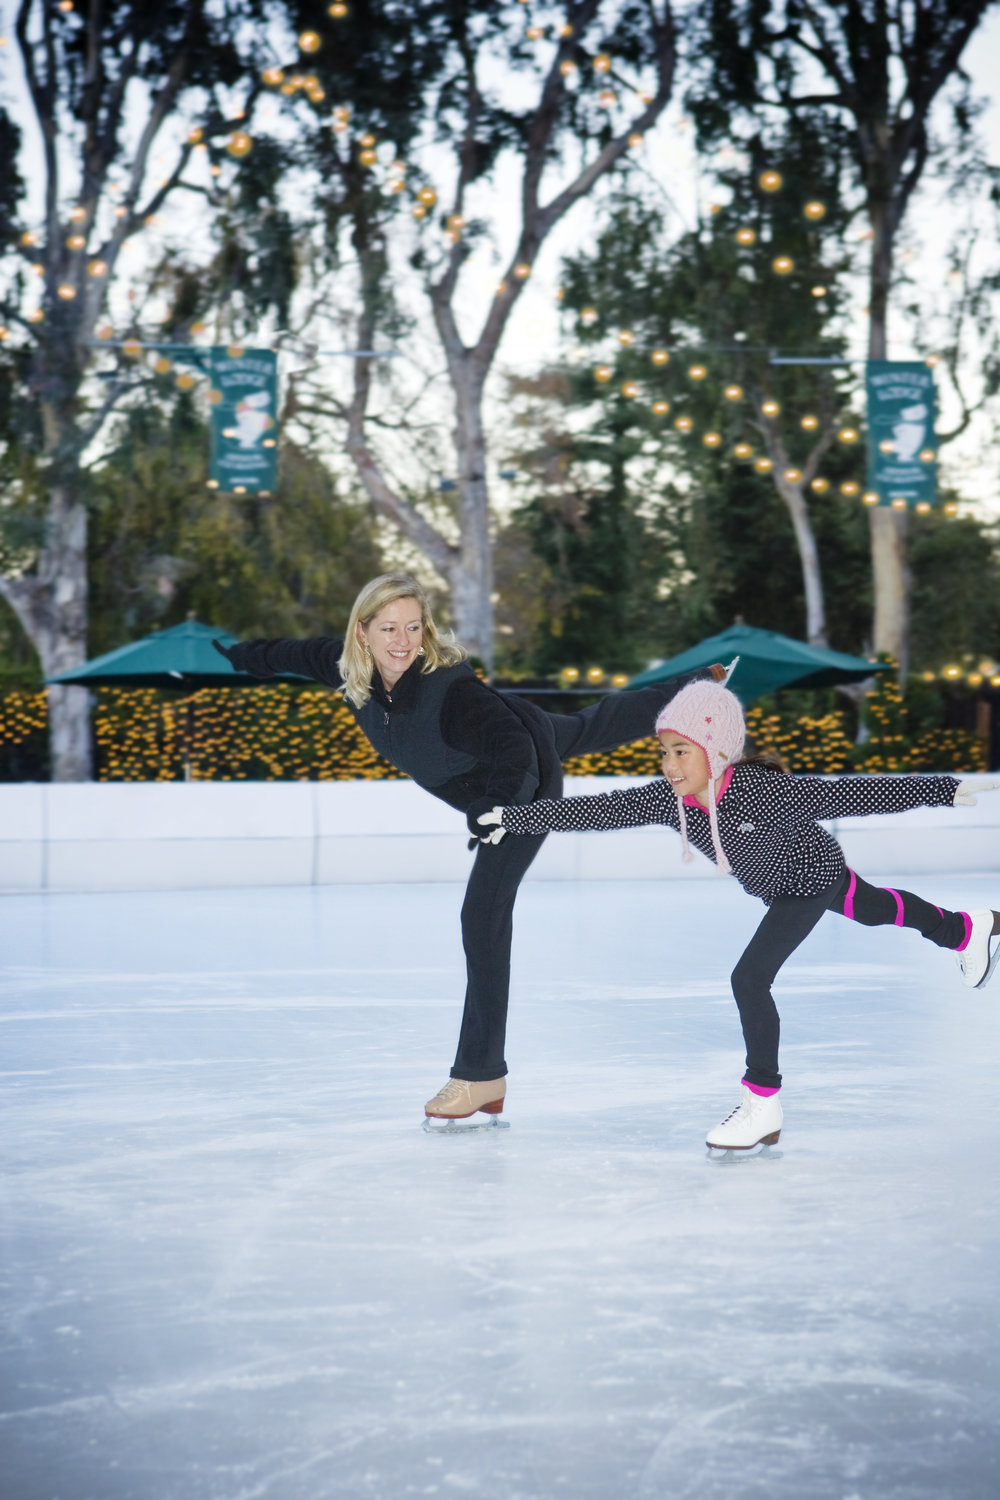 Teaching skating at the Winter Lodge, Palo Alto